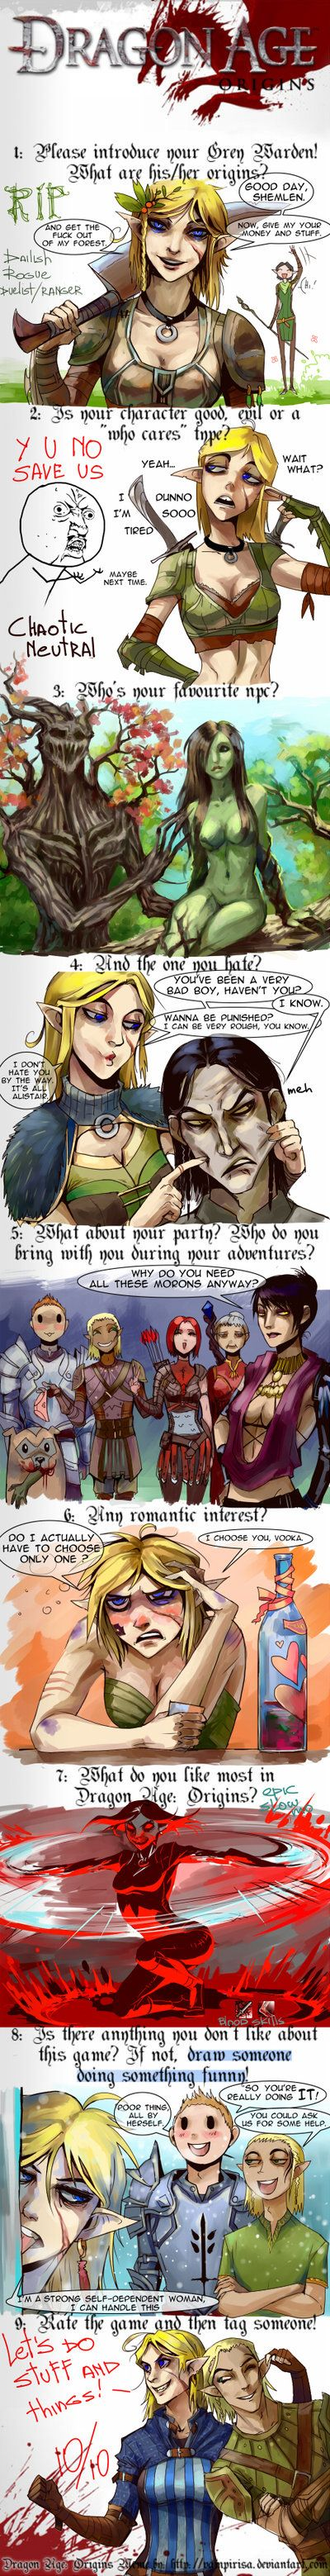 Dragon Age Origins Meme by NanoeTetsu.deviantart.com on @deviantART